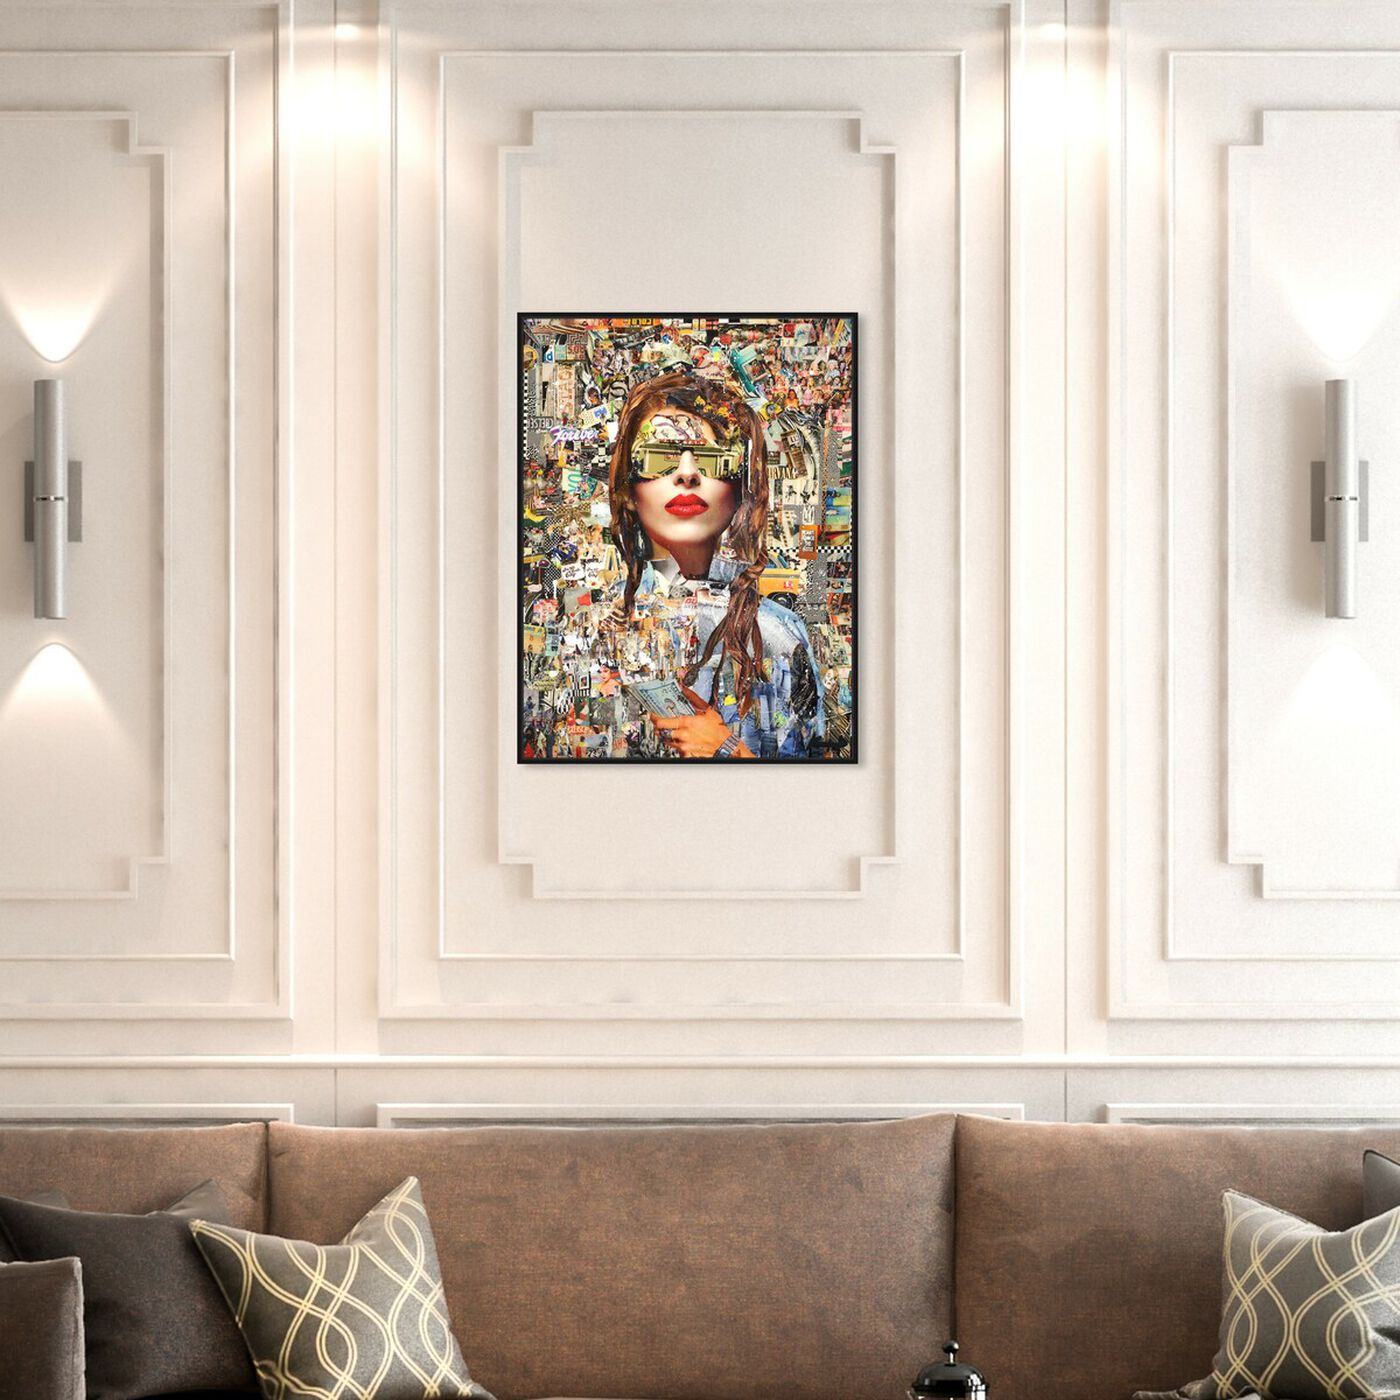 Hanging view of Katy Hirschfeld - Successful featuring fashion and glam and portraits art.